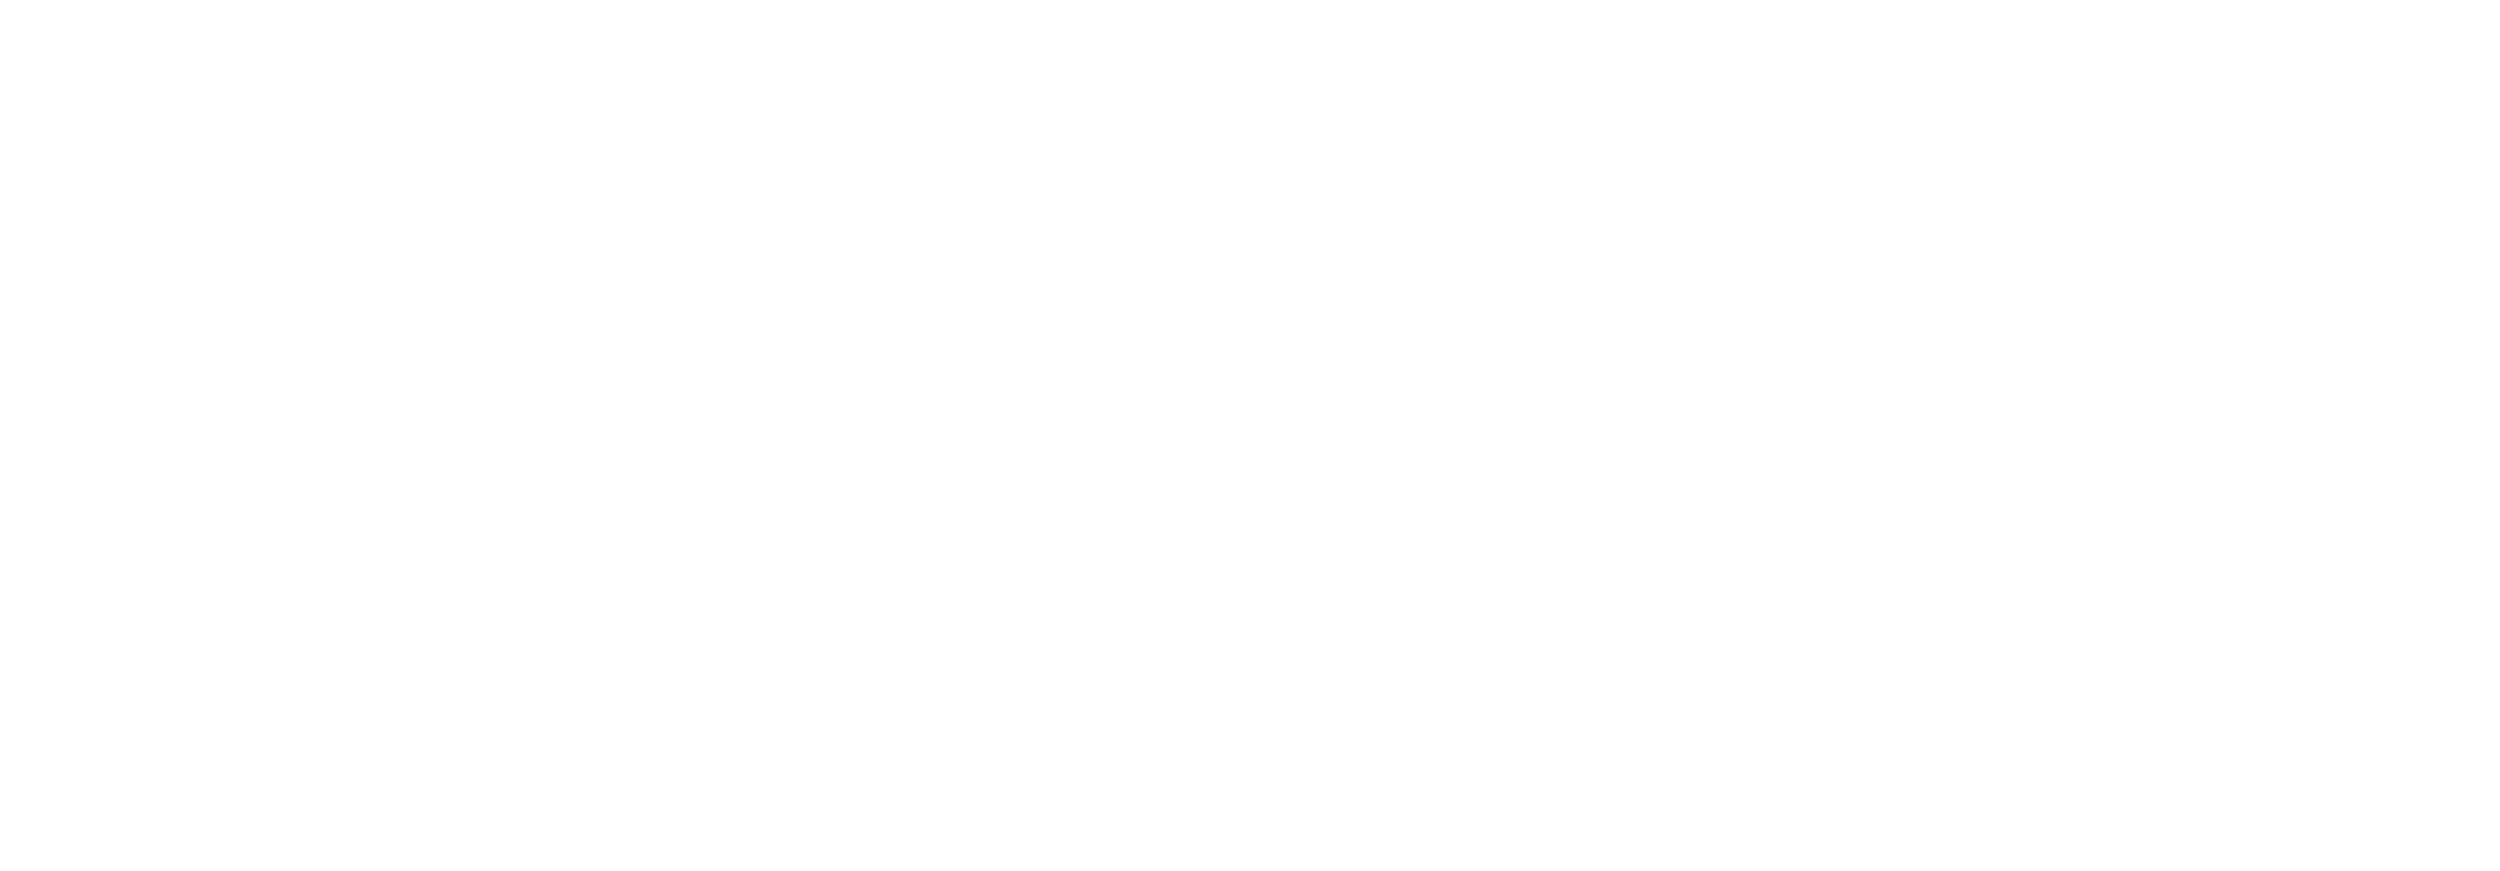 JR LOGO - LONG - TRANSPARENT AND WHITE - PNG.png